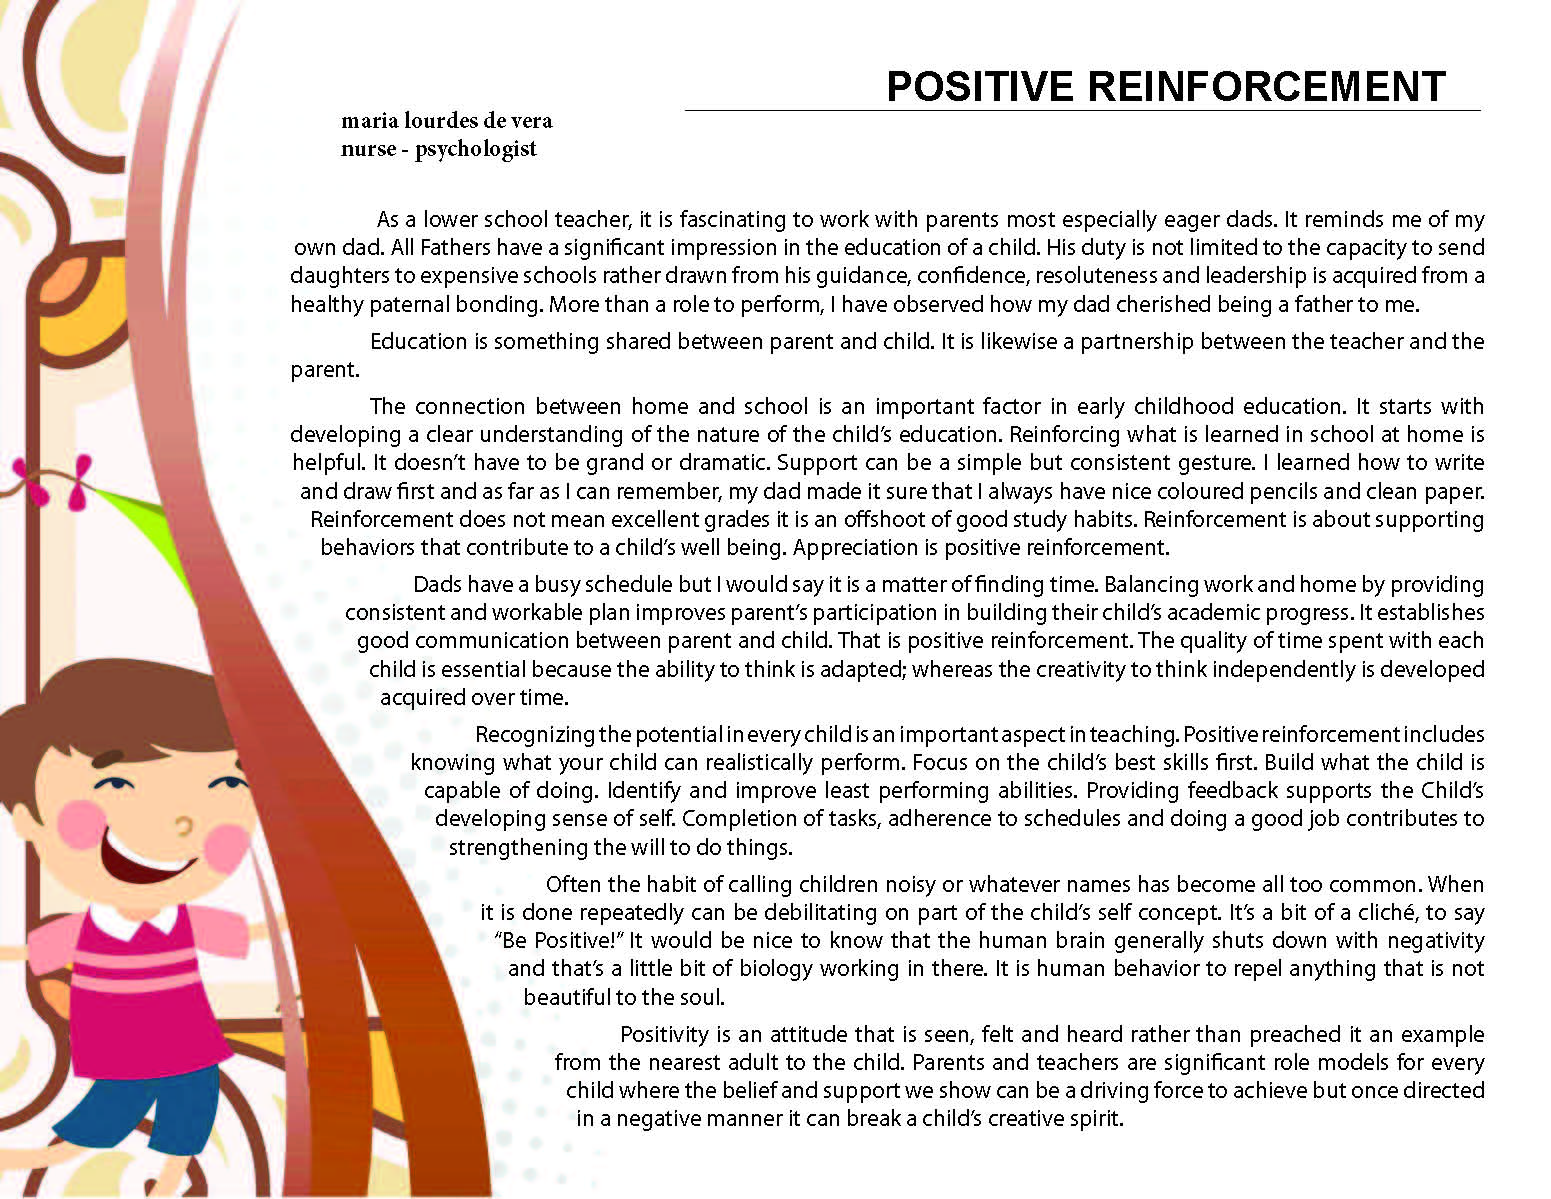 Maria_Lourdes_de_vera-positive_reinforcement-psychology_Page_1